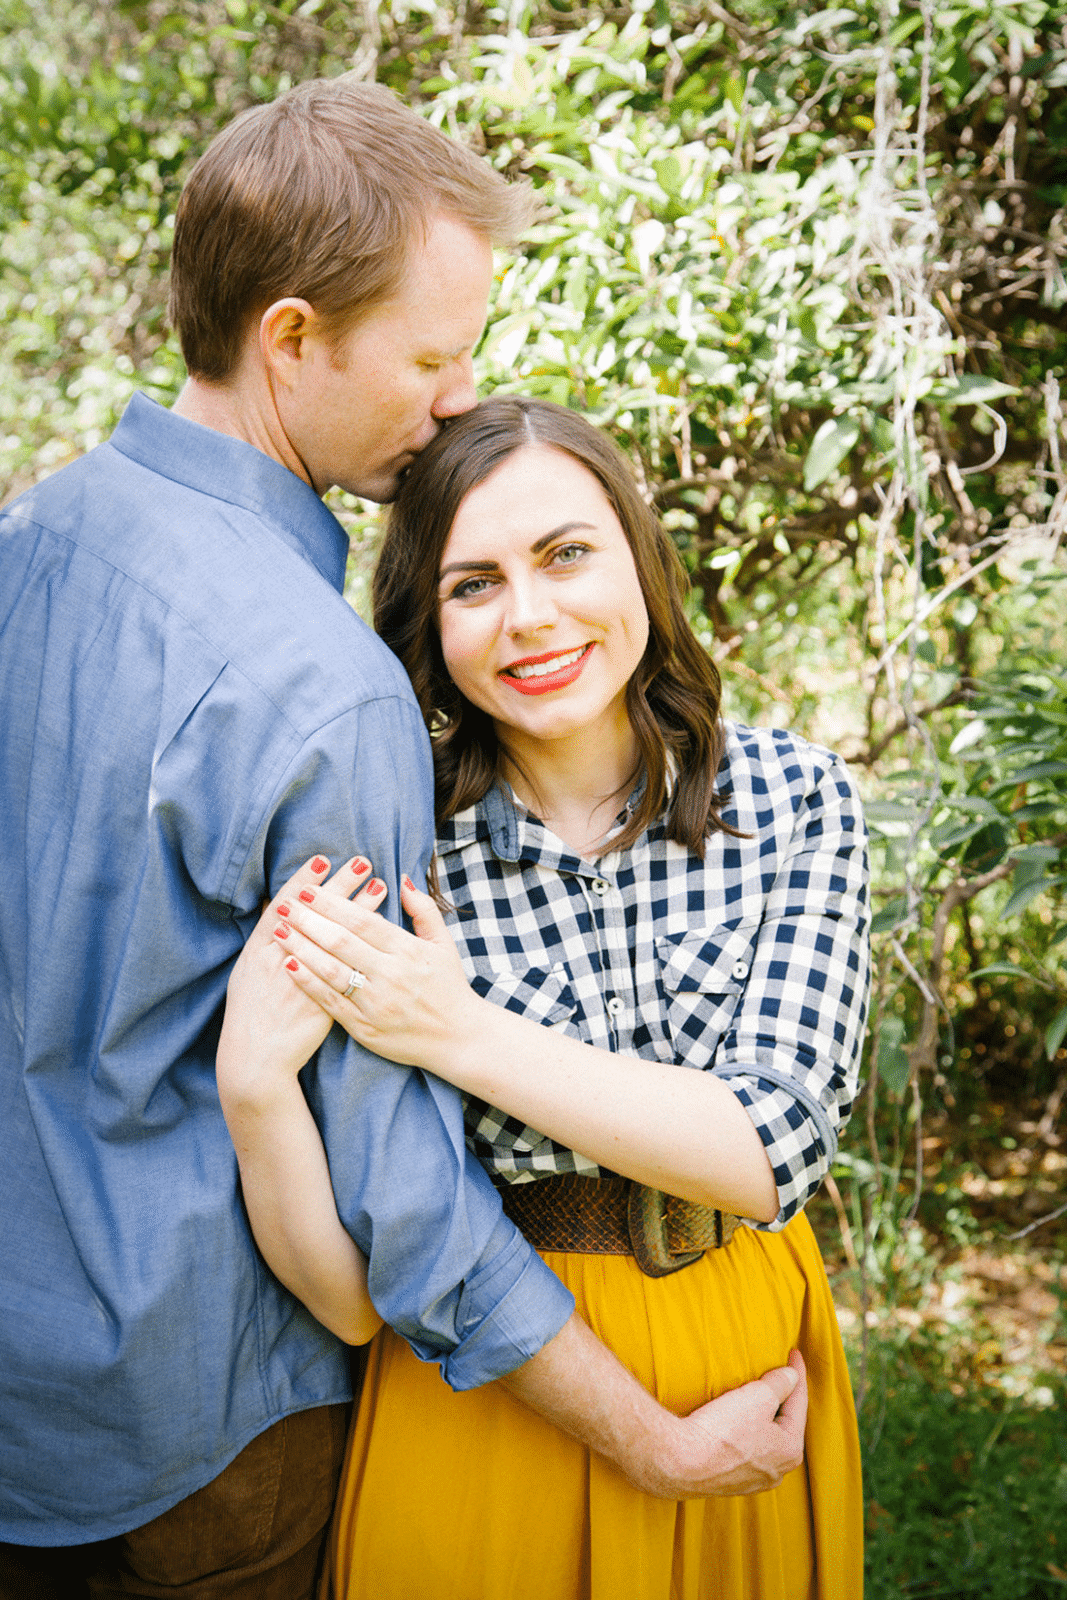 Such a cute maternity photo shoot idea! Love this maternity photo idea with the couple showing their love and that bump!